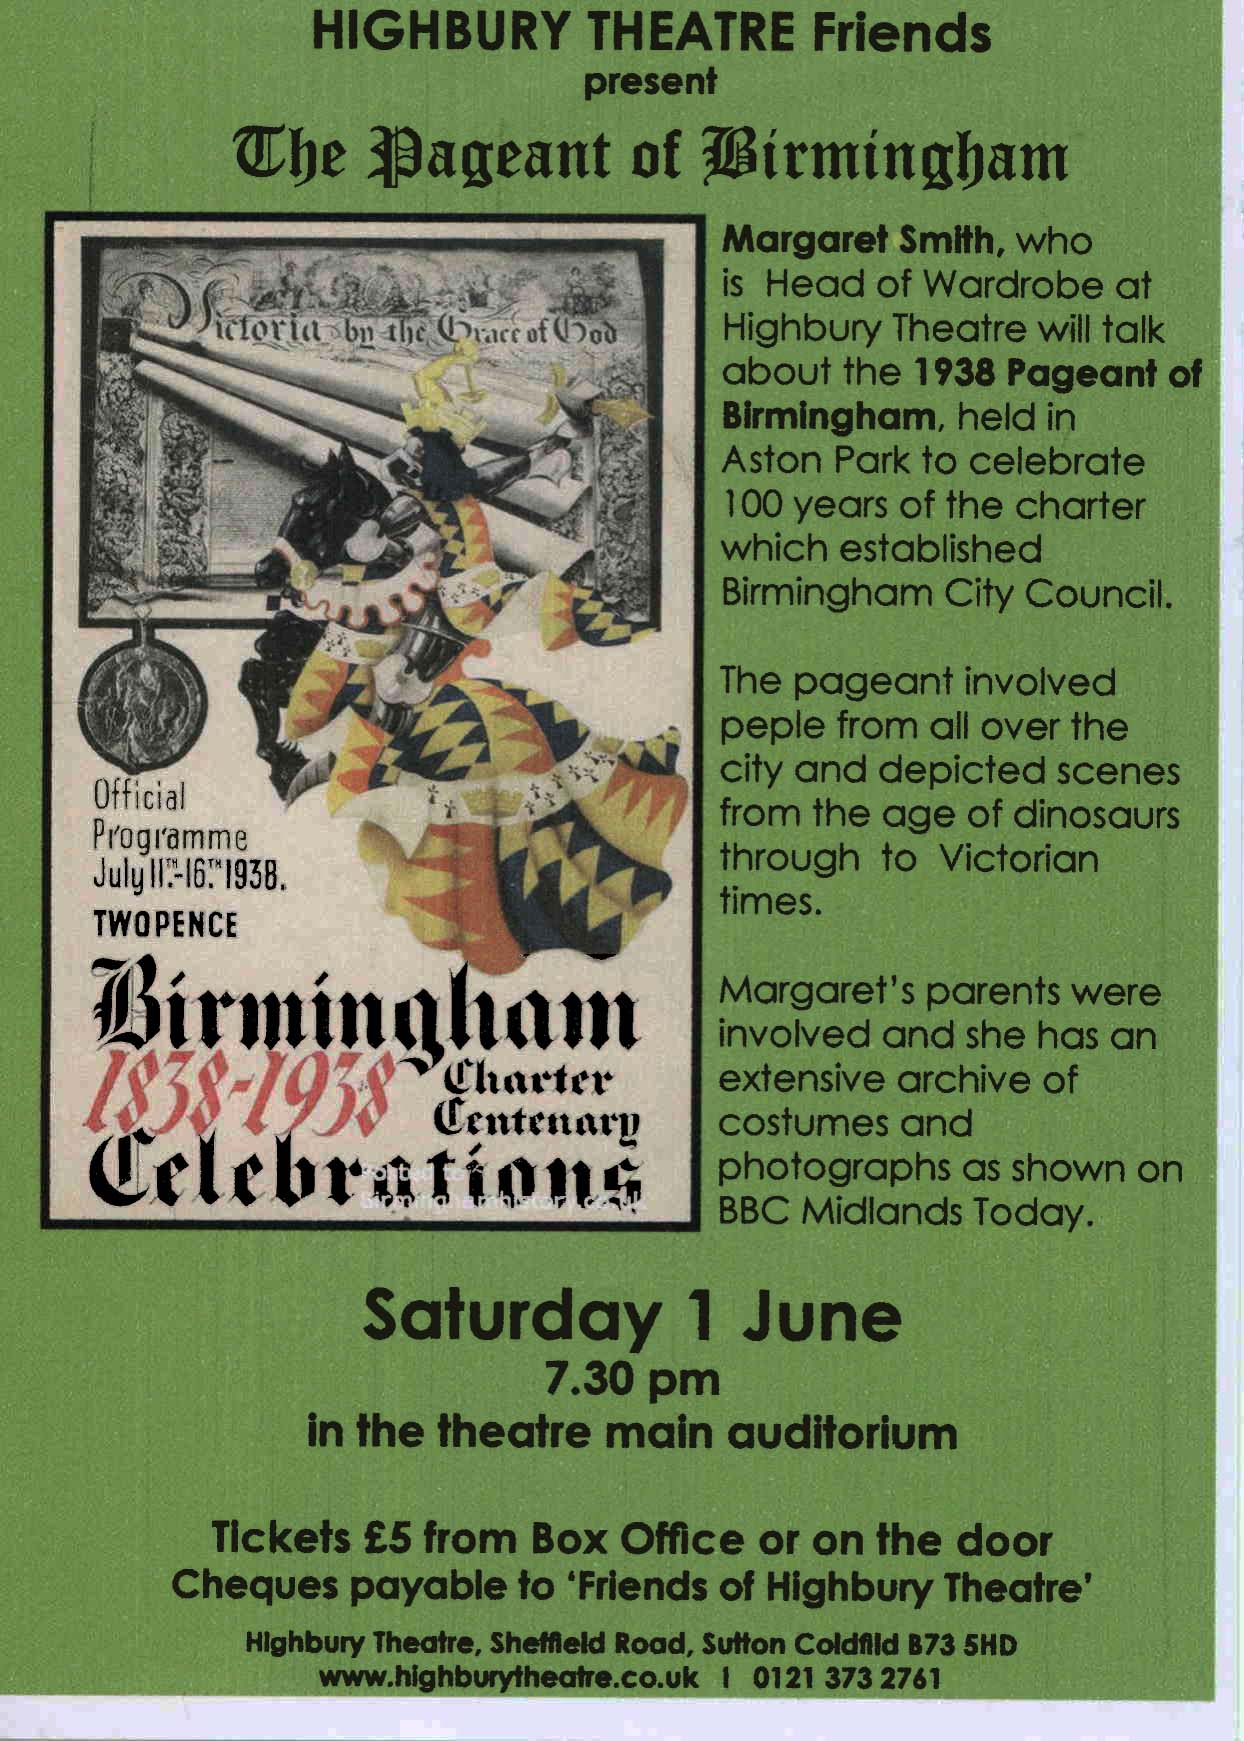 The Pageant of Birmingham banner image